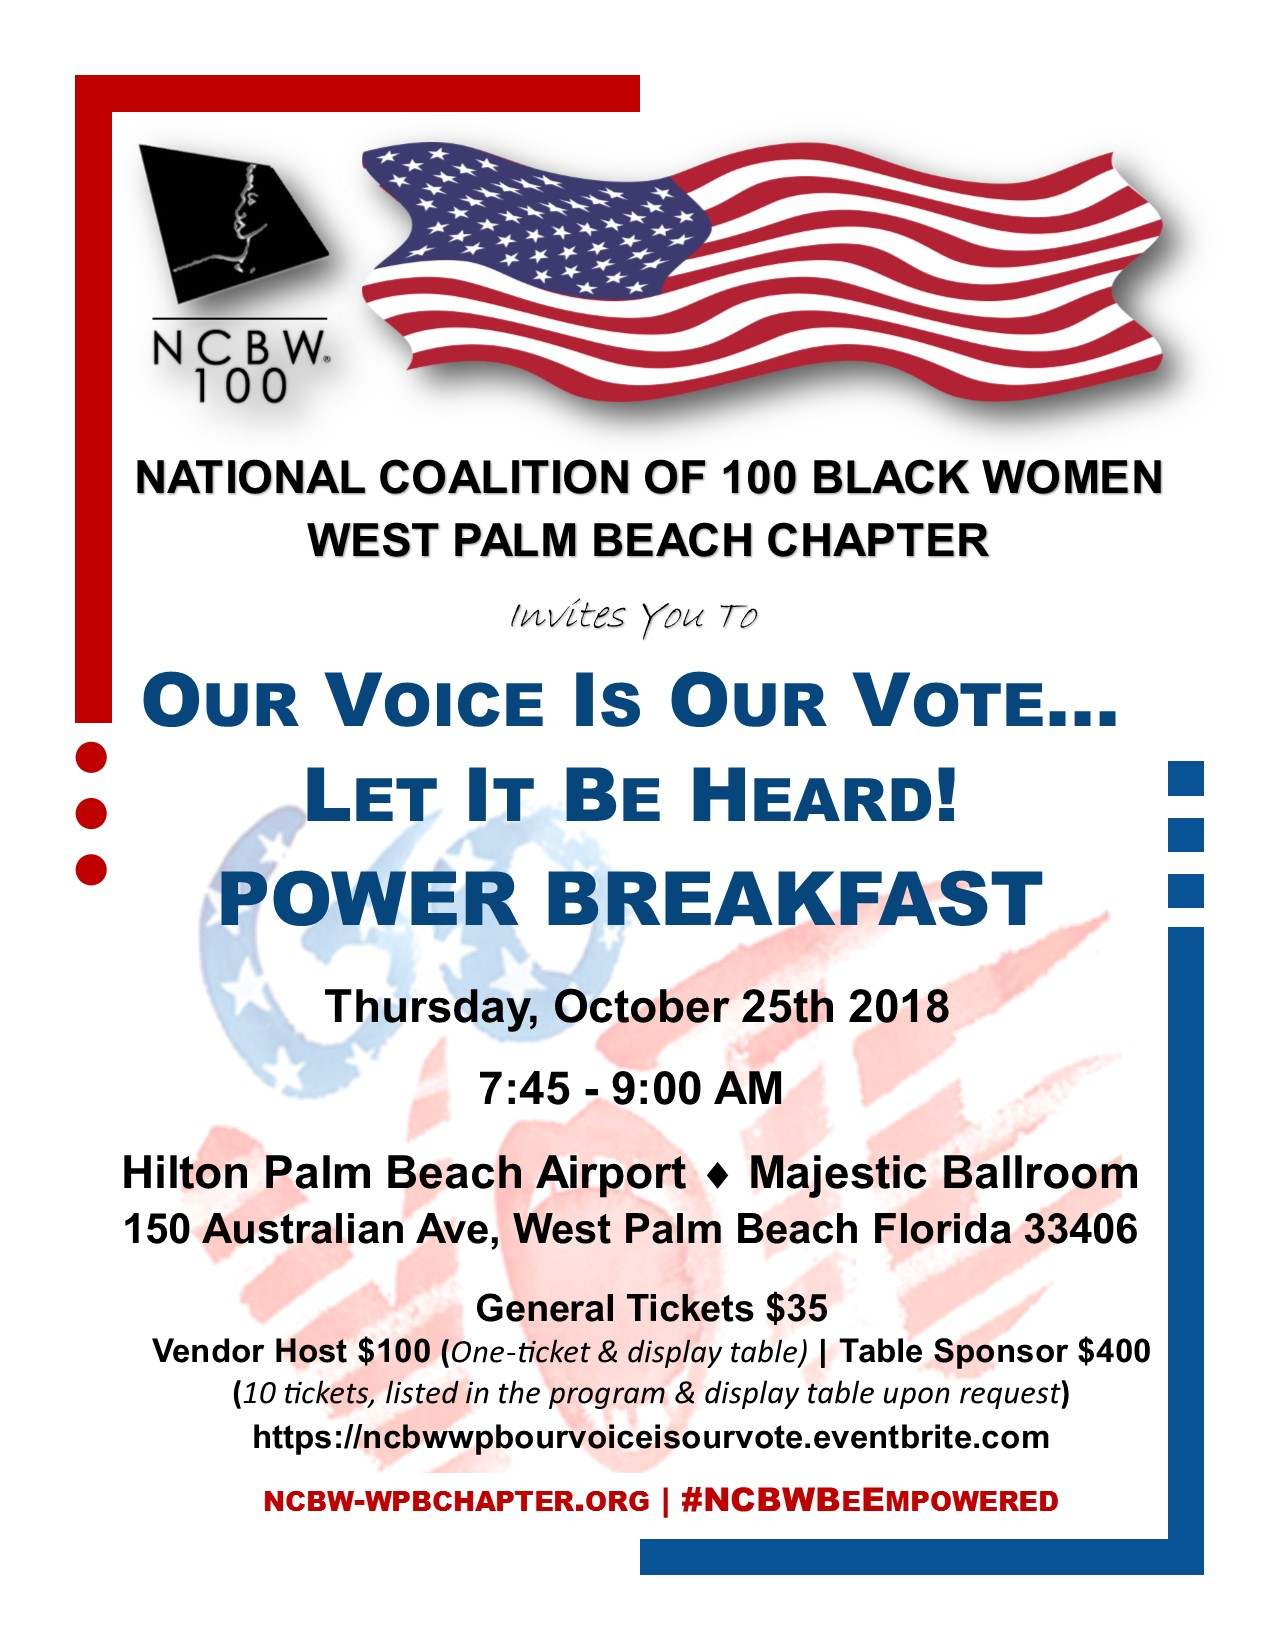 NCBW West Palm Beach Chapter-Our Voice Is Our Vote 10252018